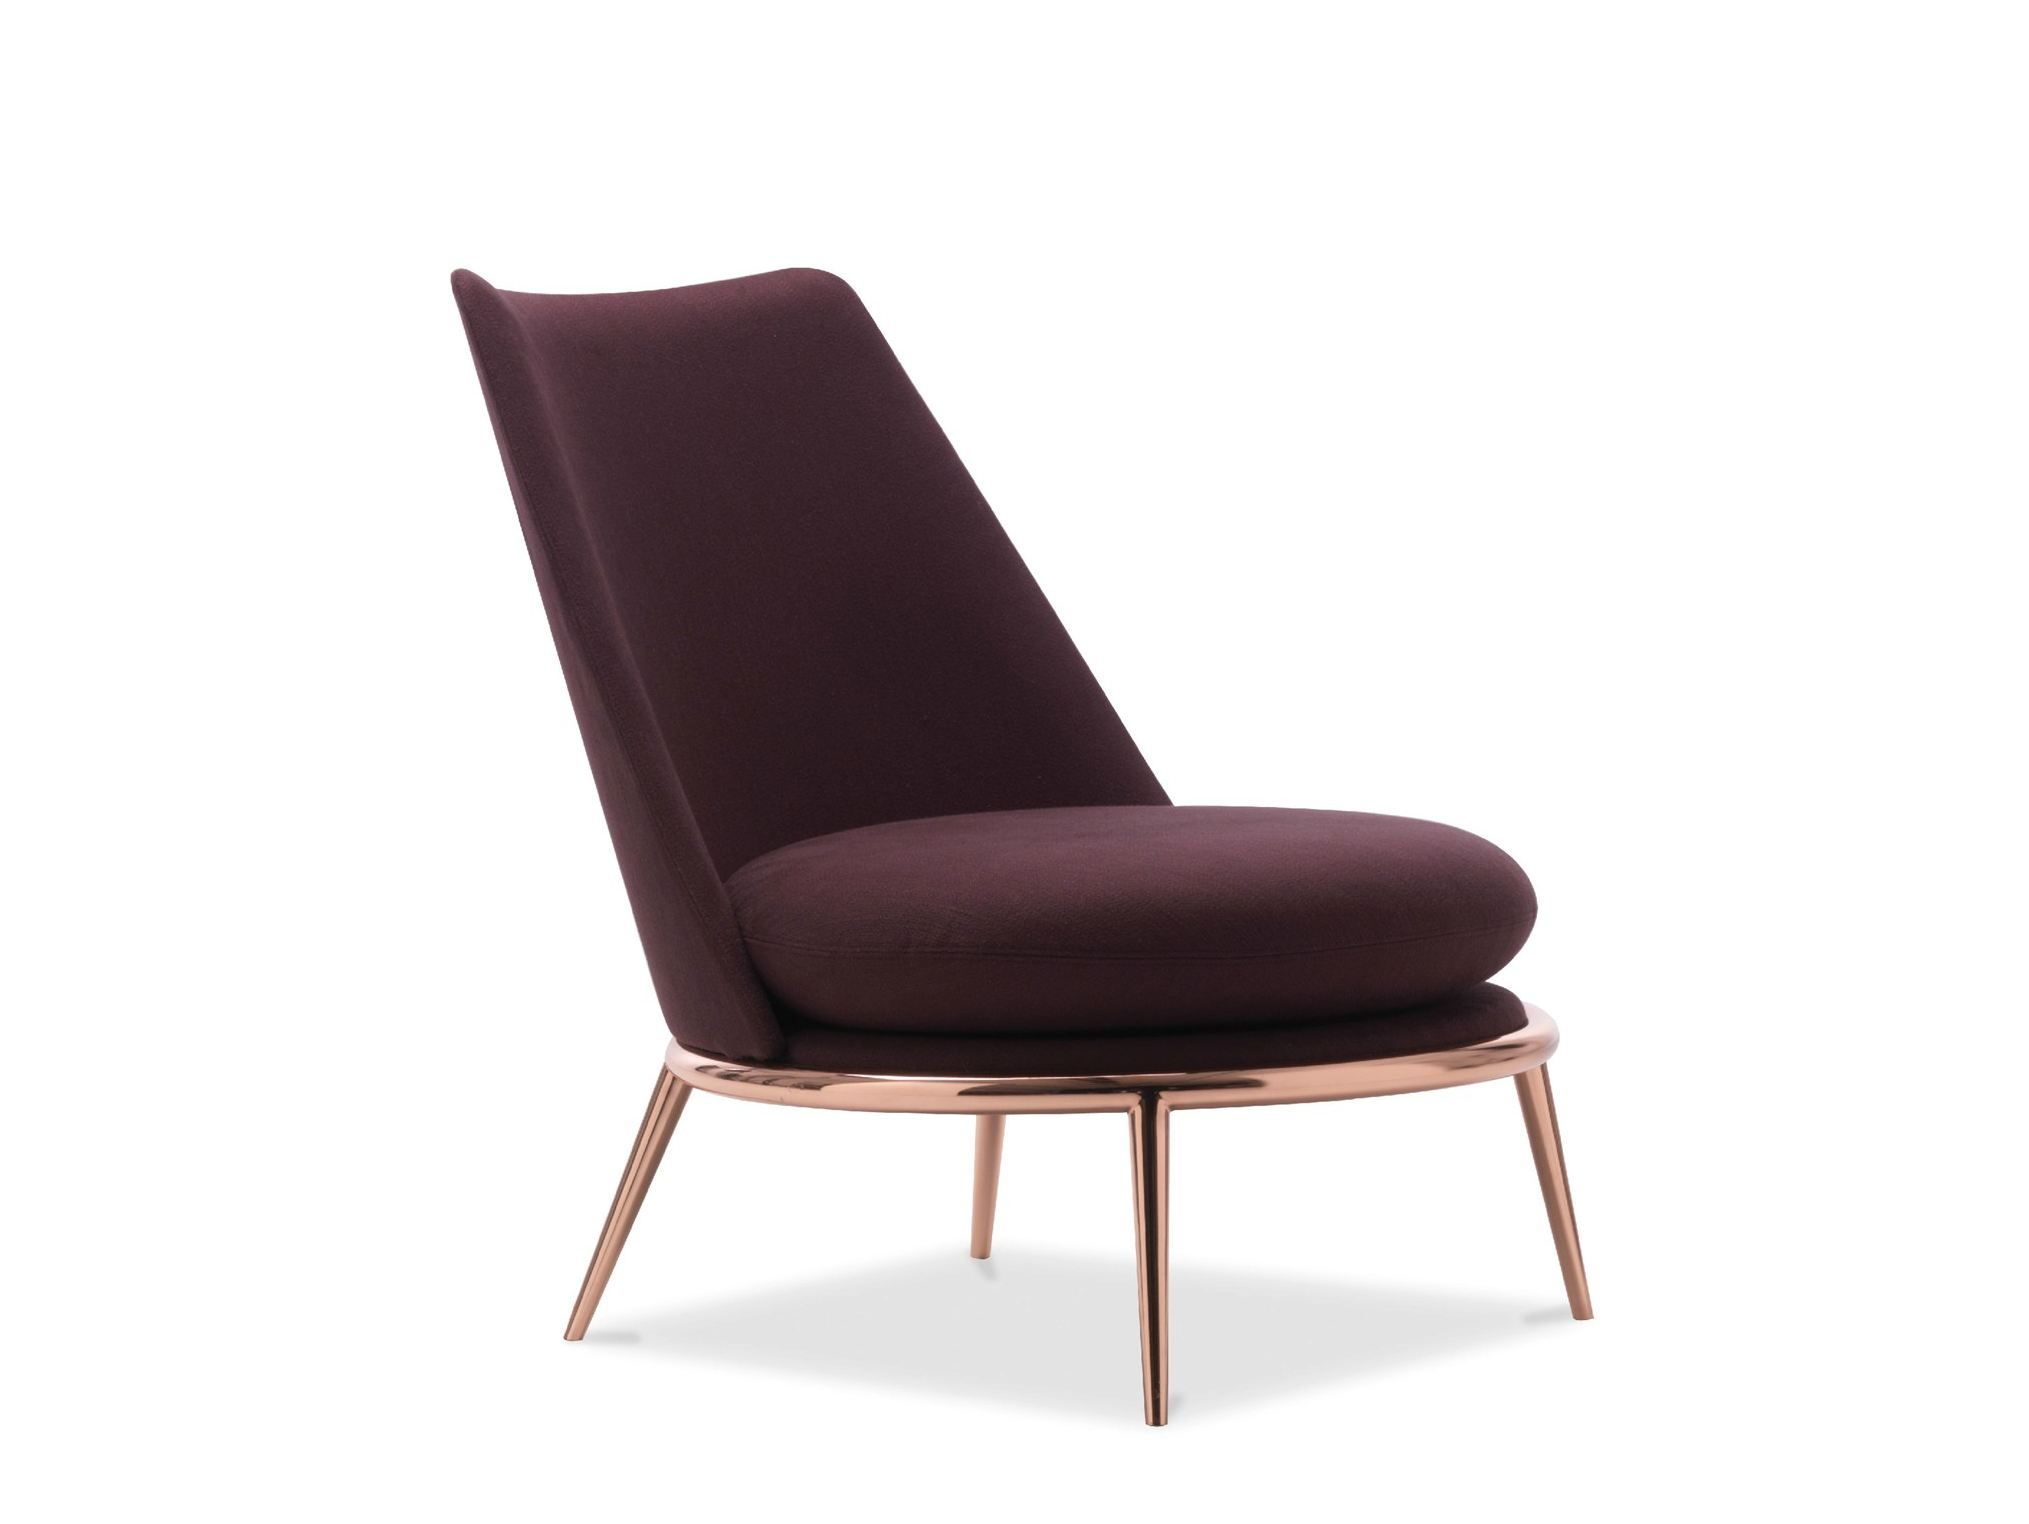 Cantori Sedie ~ Best cantori images armchairs chaise lounge